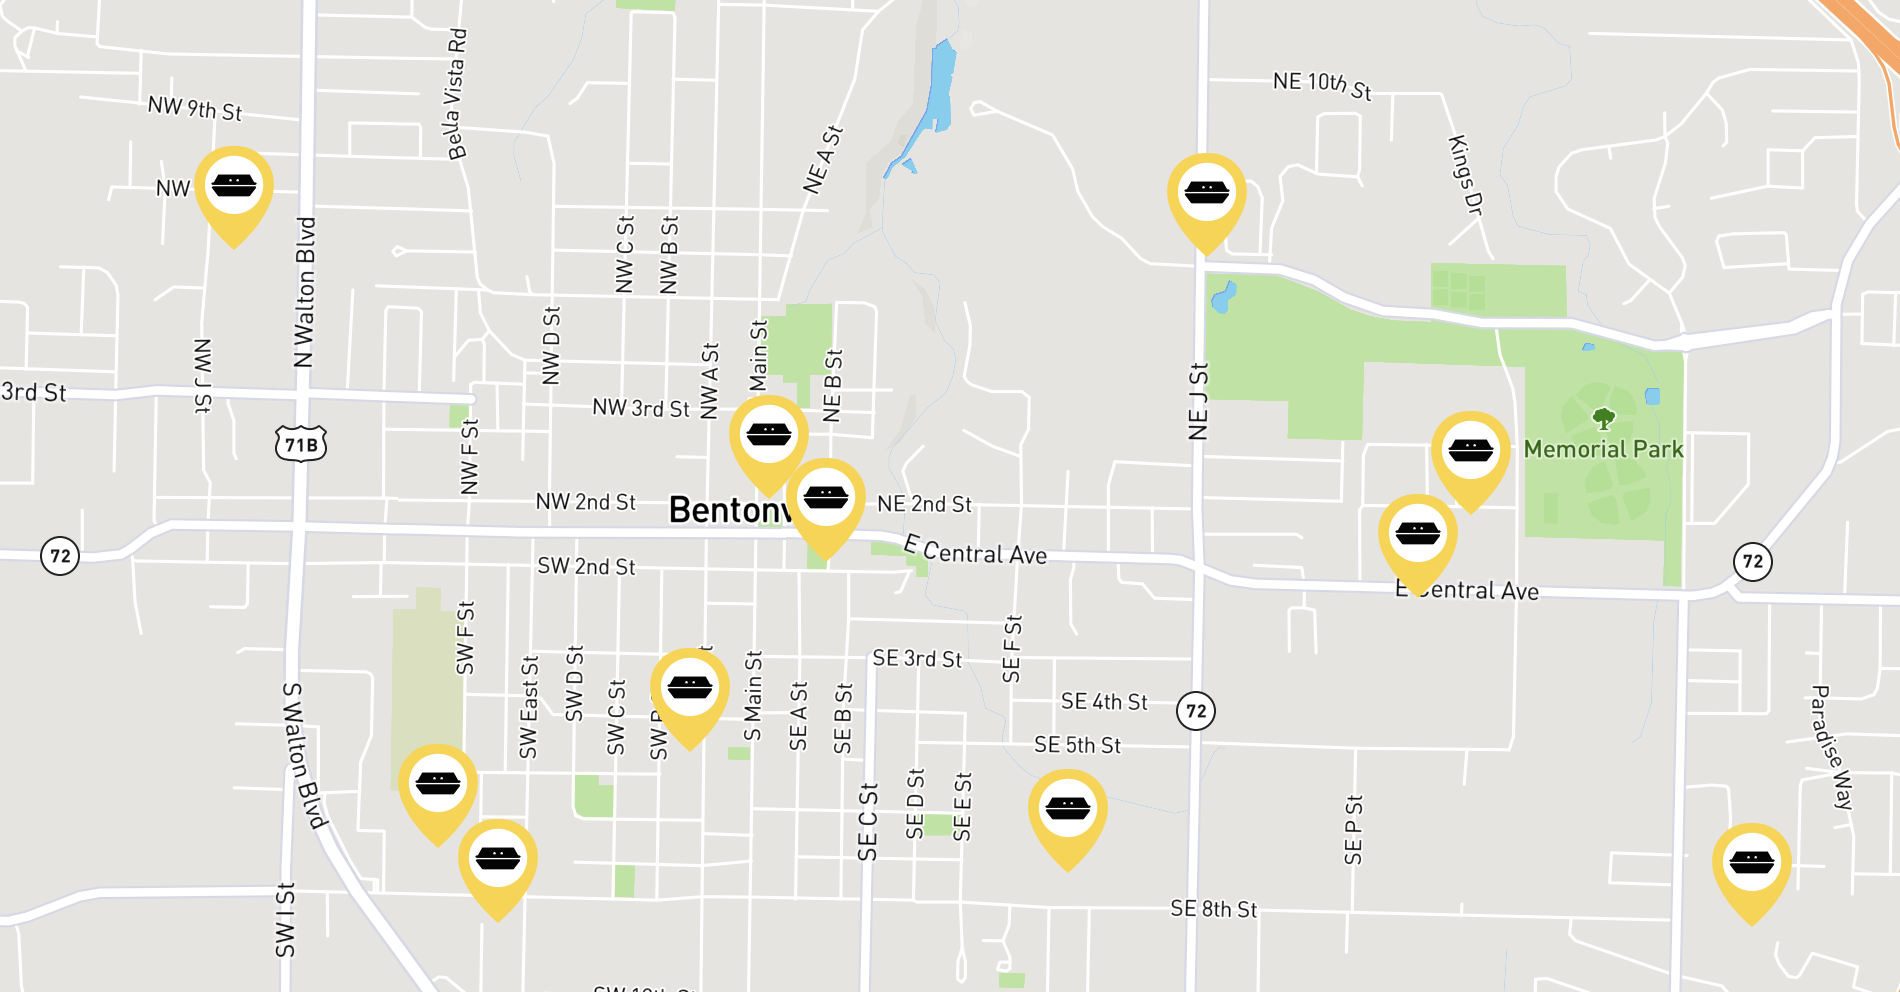 Luncher hot spots are spread across Bentonville and the rest of Northwest Arkansas.